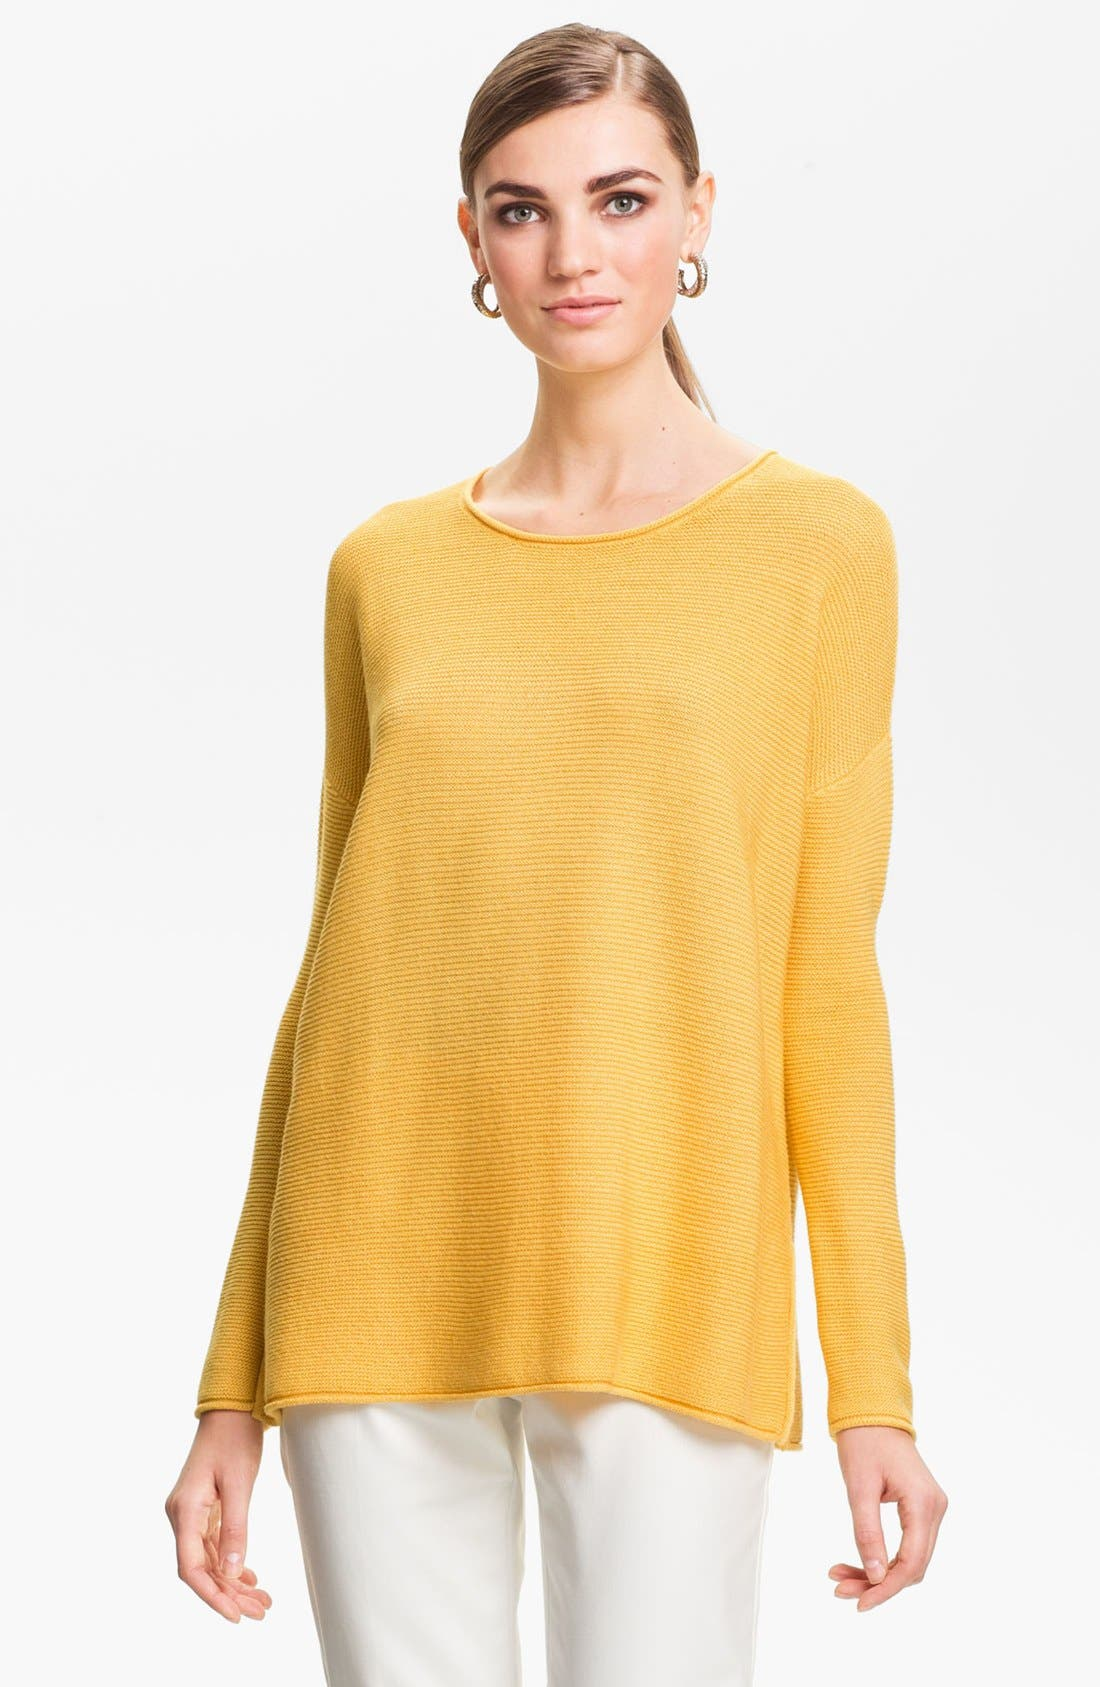 Main Image - St. John Yellow Label Ottoman Knit Sweater